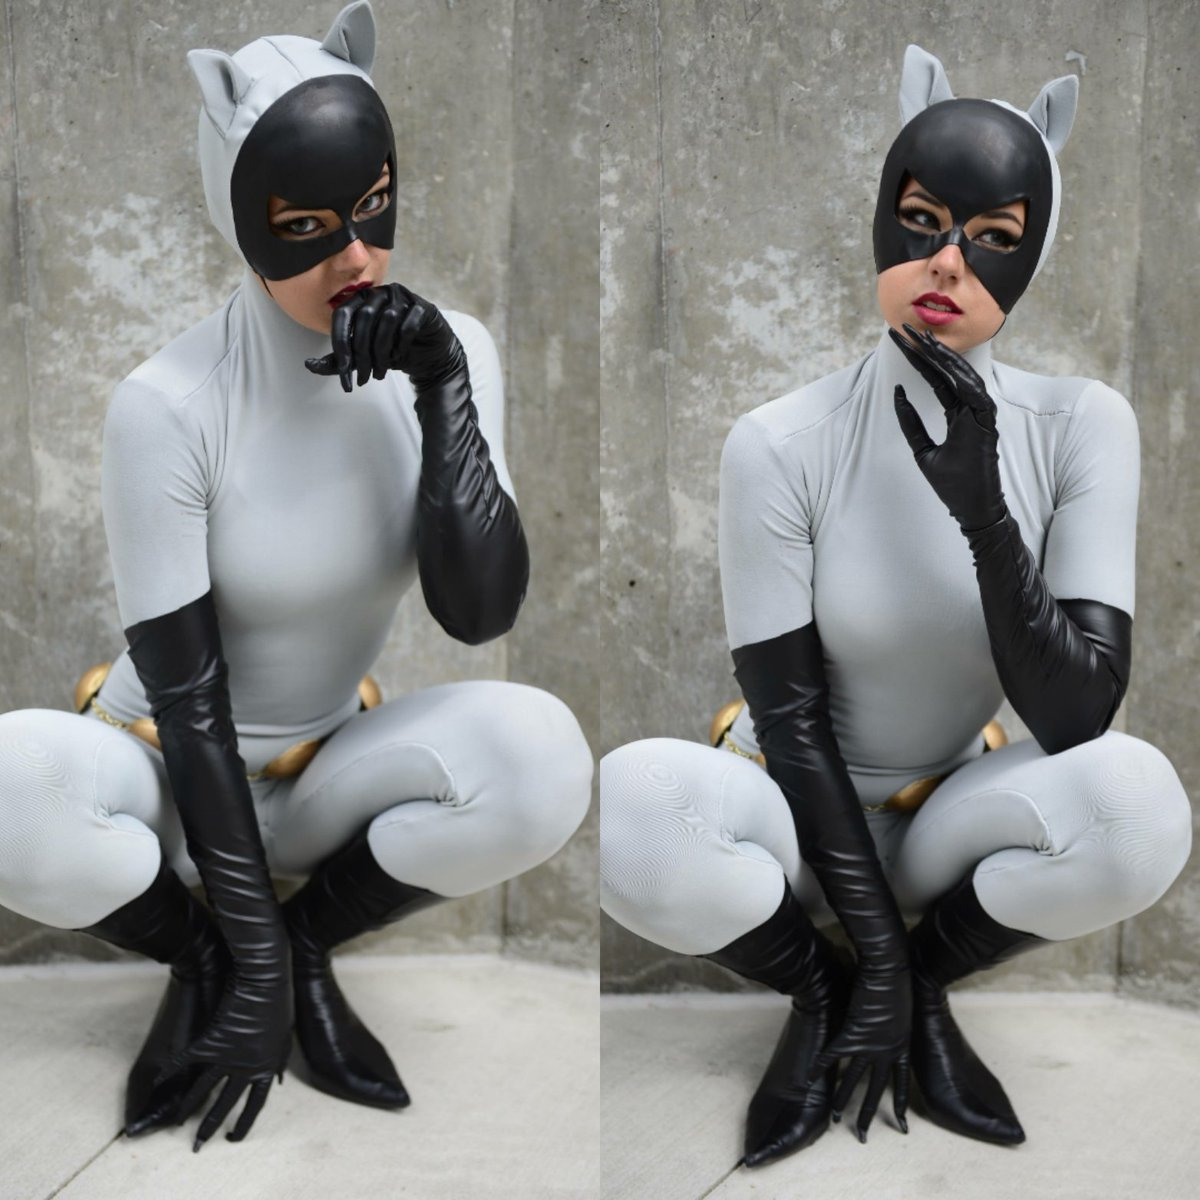 Batman: The Animated Series: Catwoman cosplay by Robin Cyn